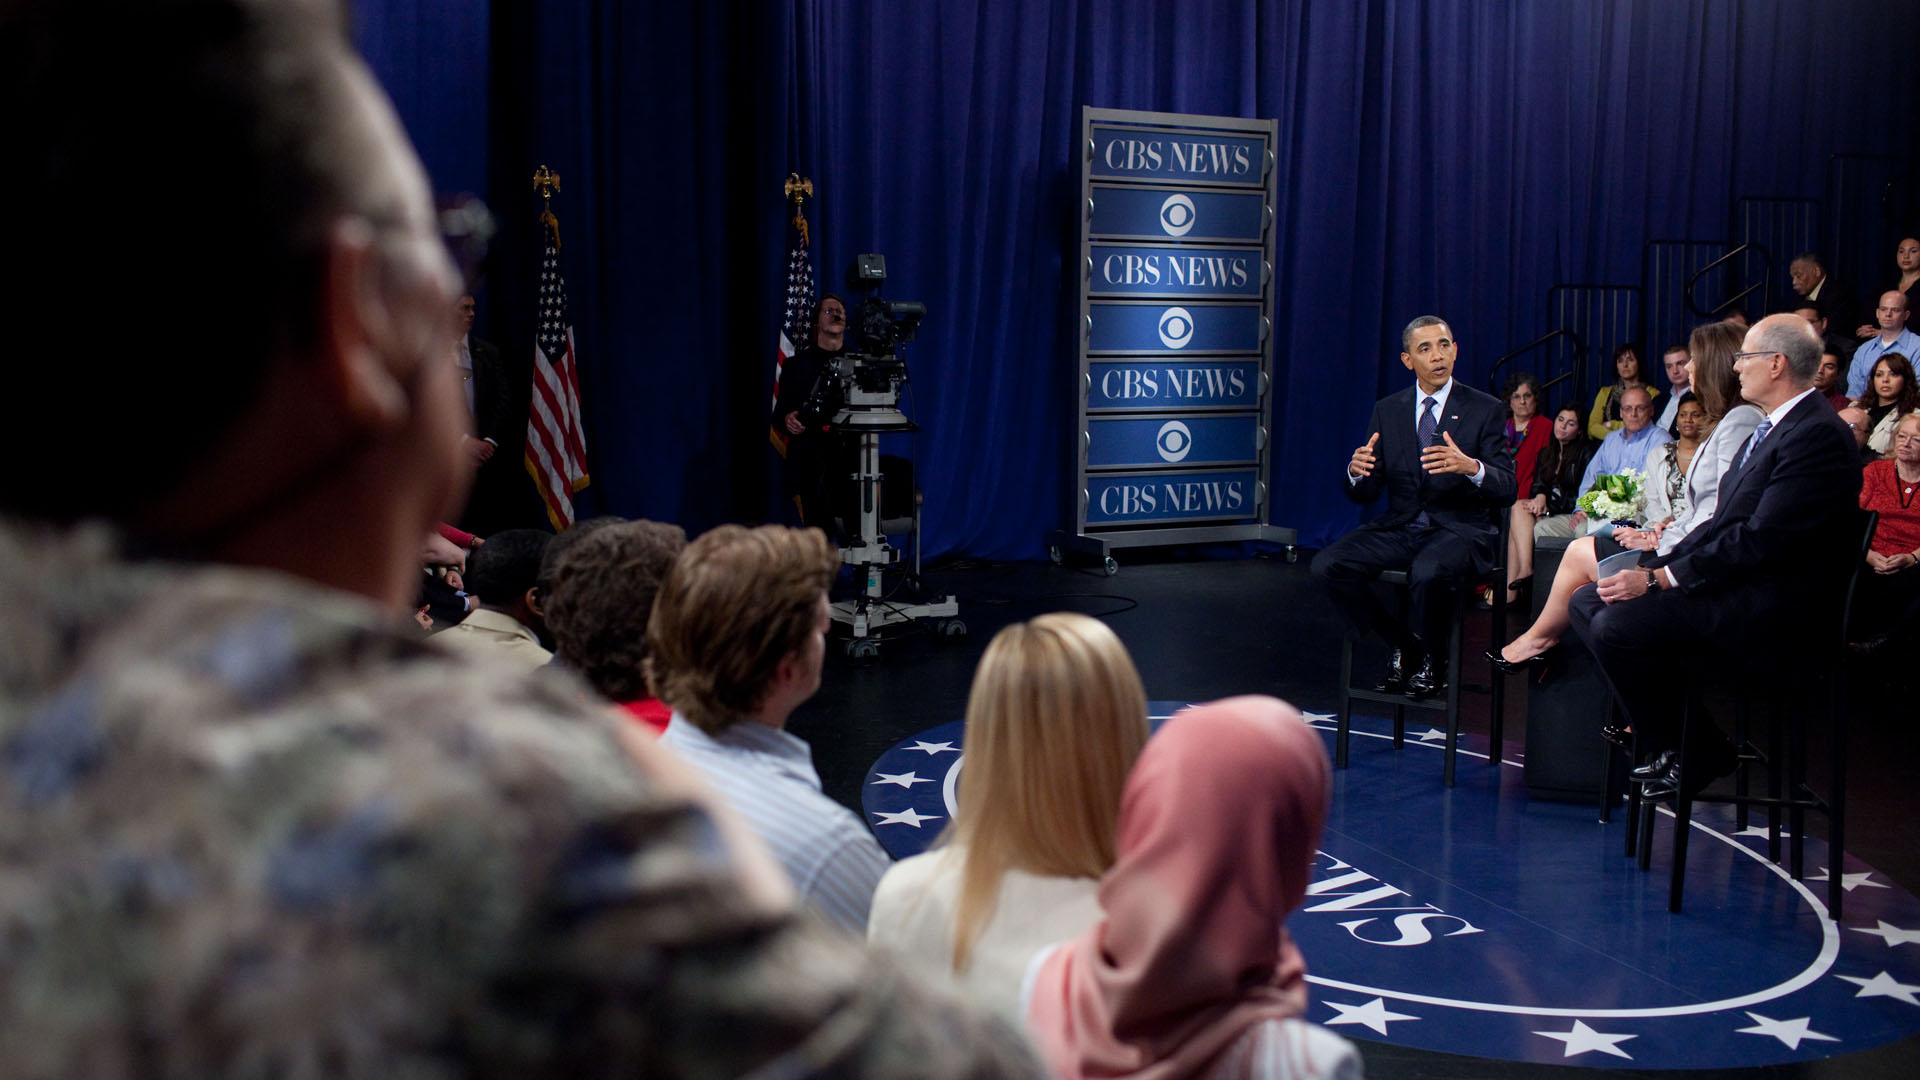 President Barack Obama Responds to a Question at a CBS News Townhall Meeting on the Economy